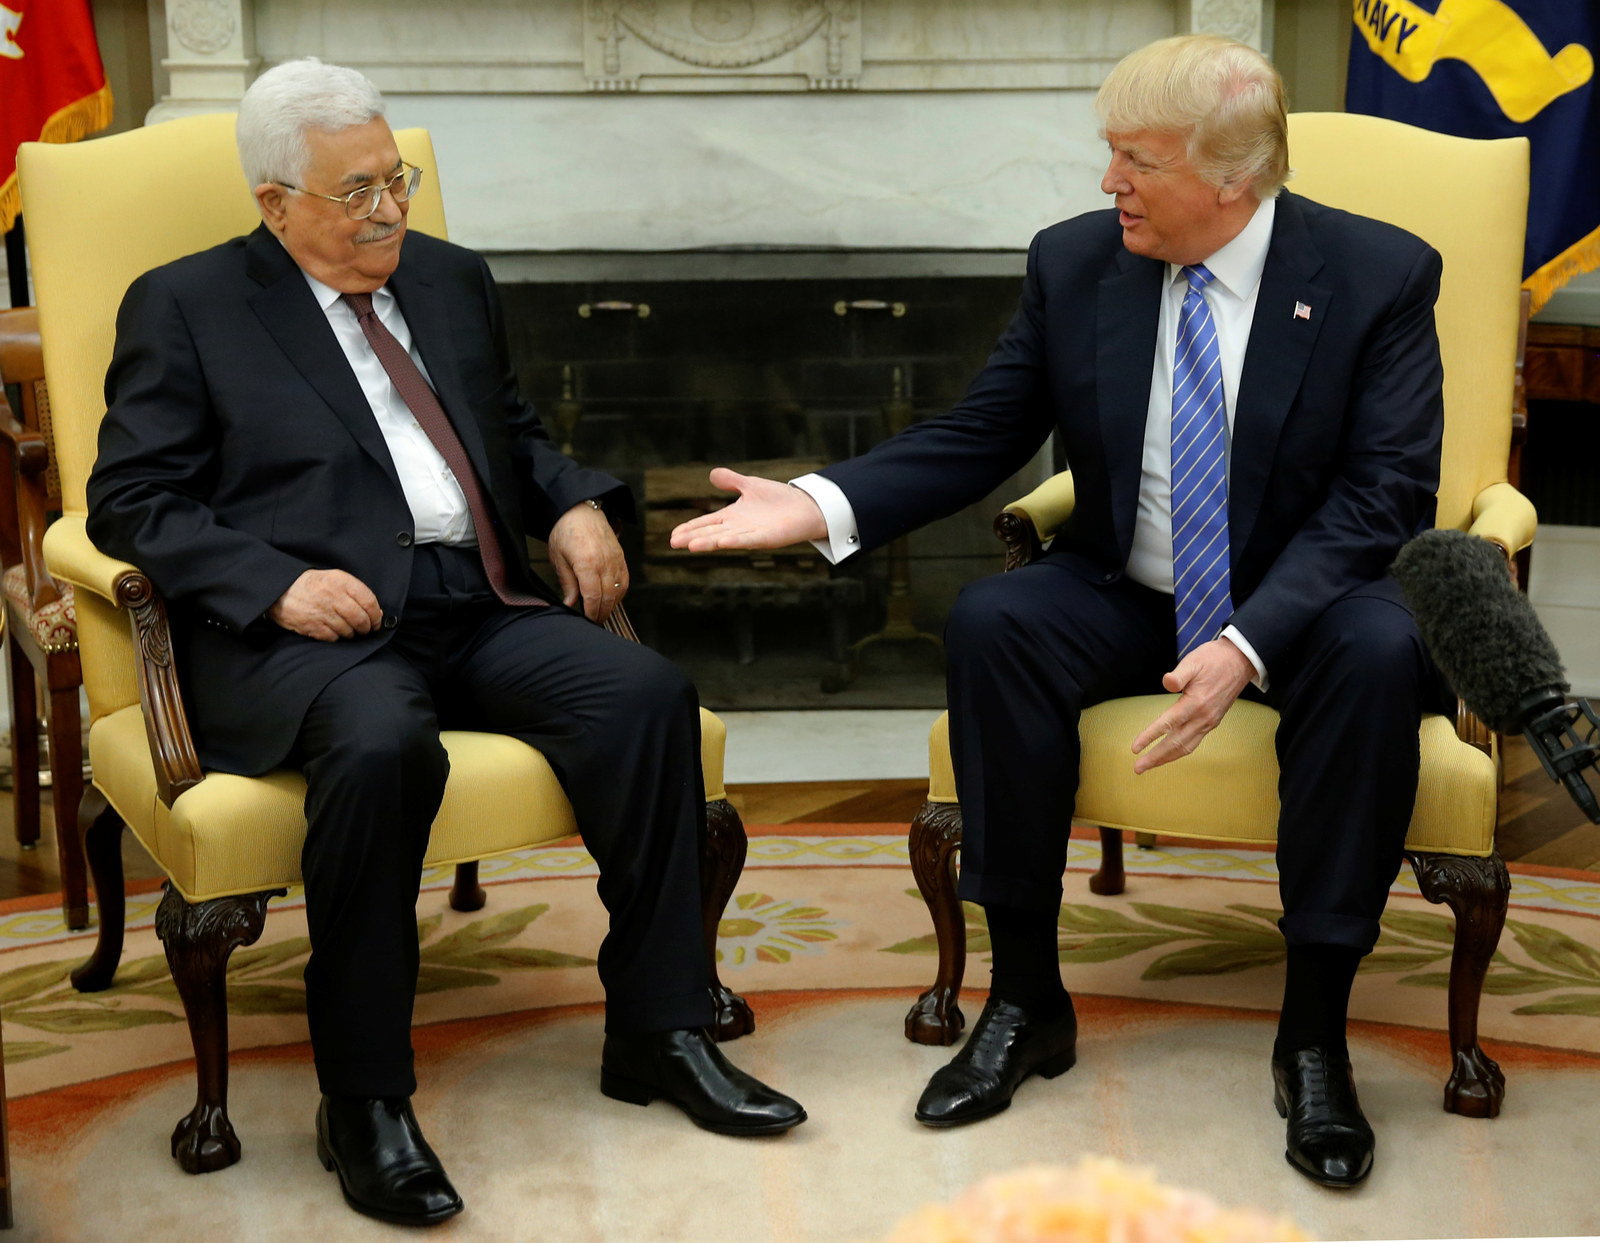 palestinian diplomat trump disqualified america from being sole broker in middle east peace deal 4